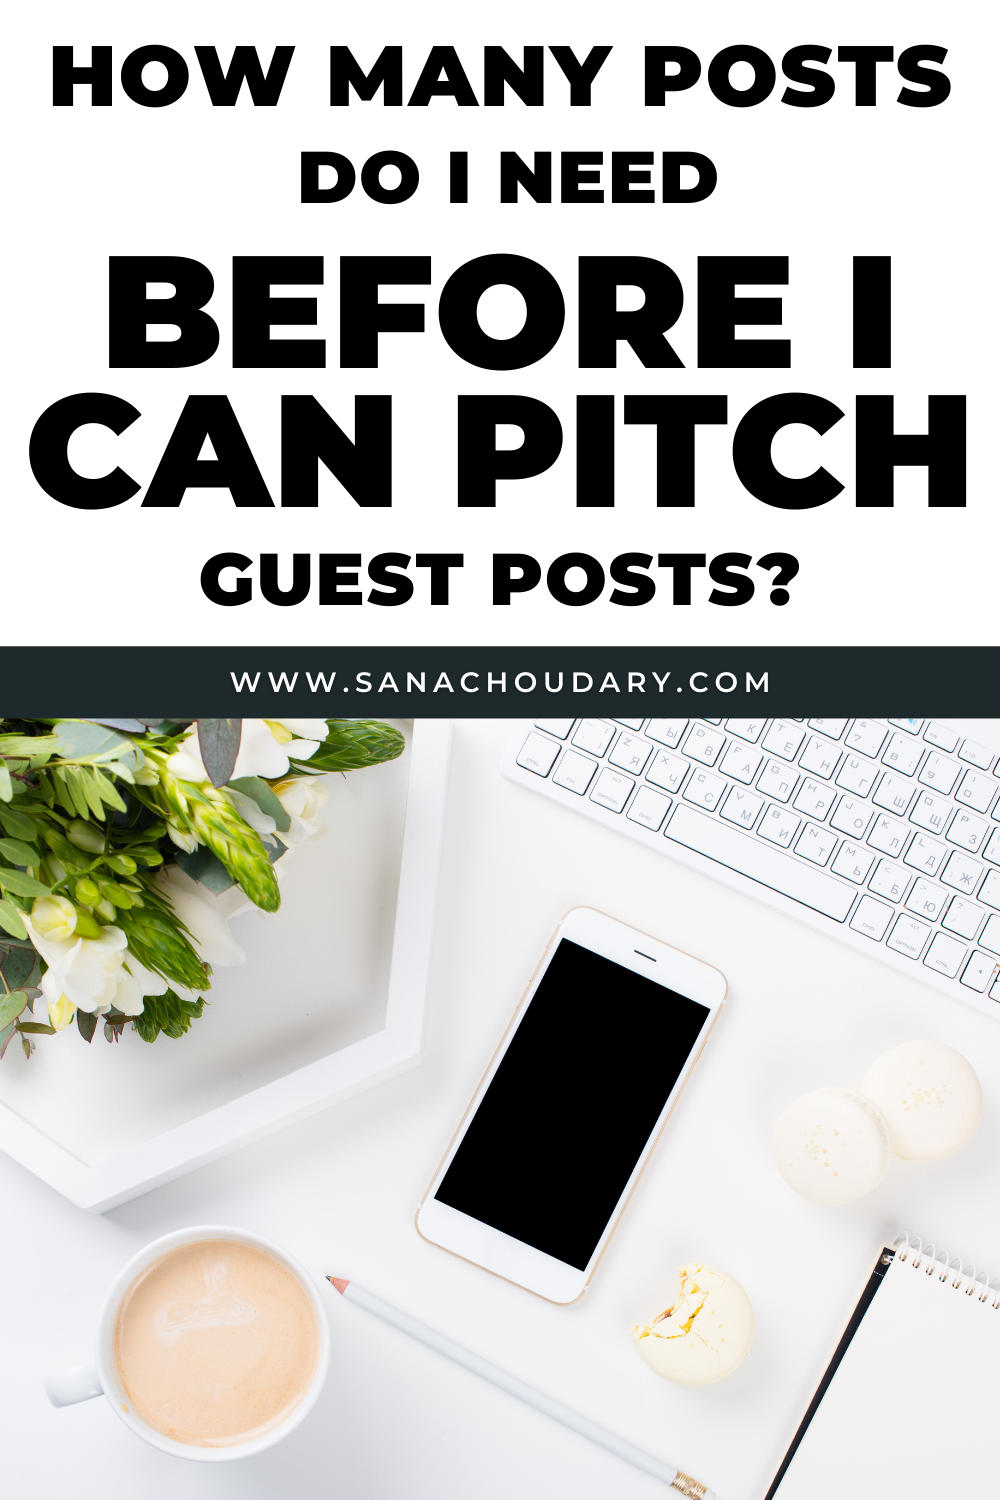 How Many Posts Do I Need Before I Can Pitch Guest Posts?